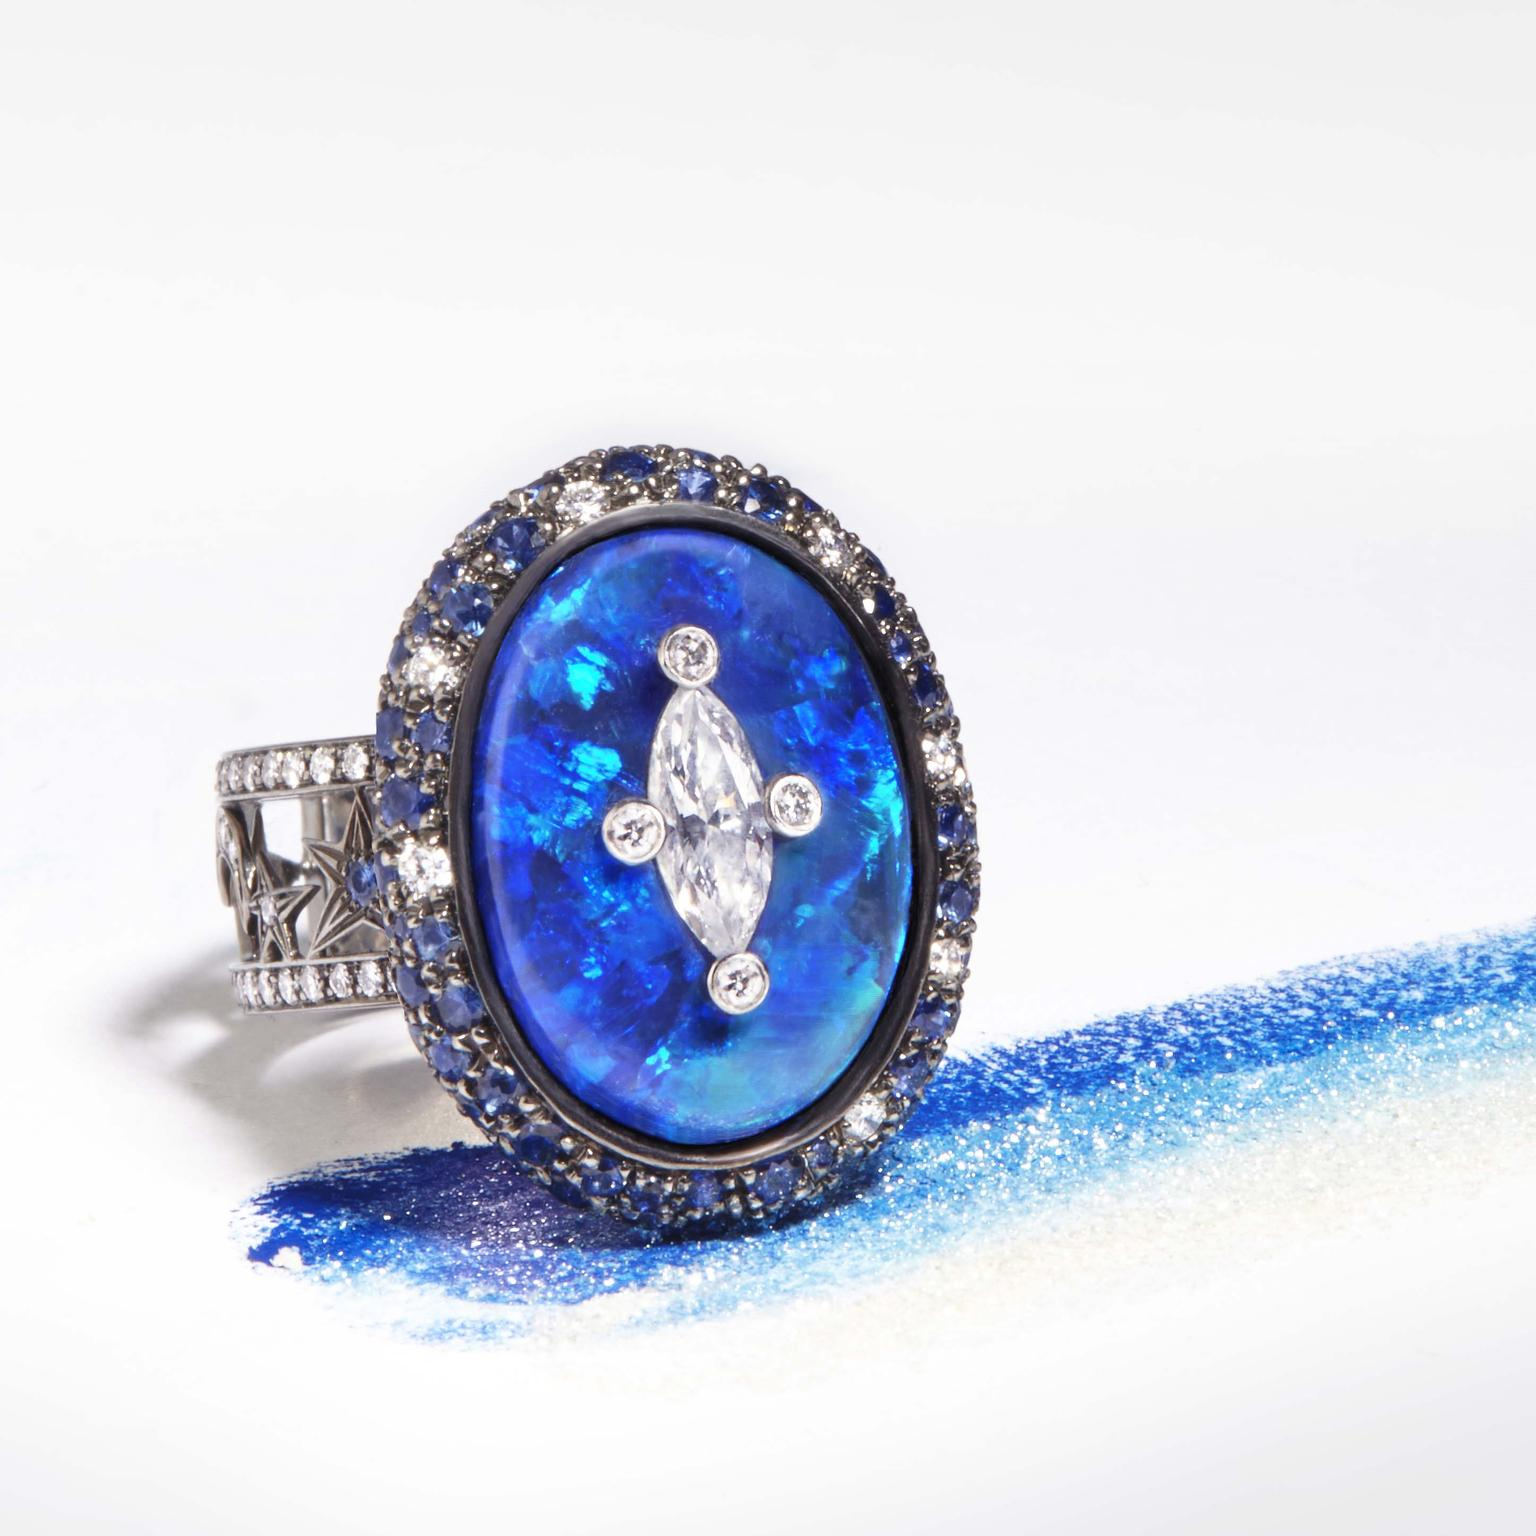 Katherine Jetter one-of-a-kind Astro opal ring with sapphires and diamonds.